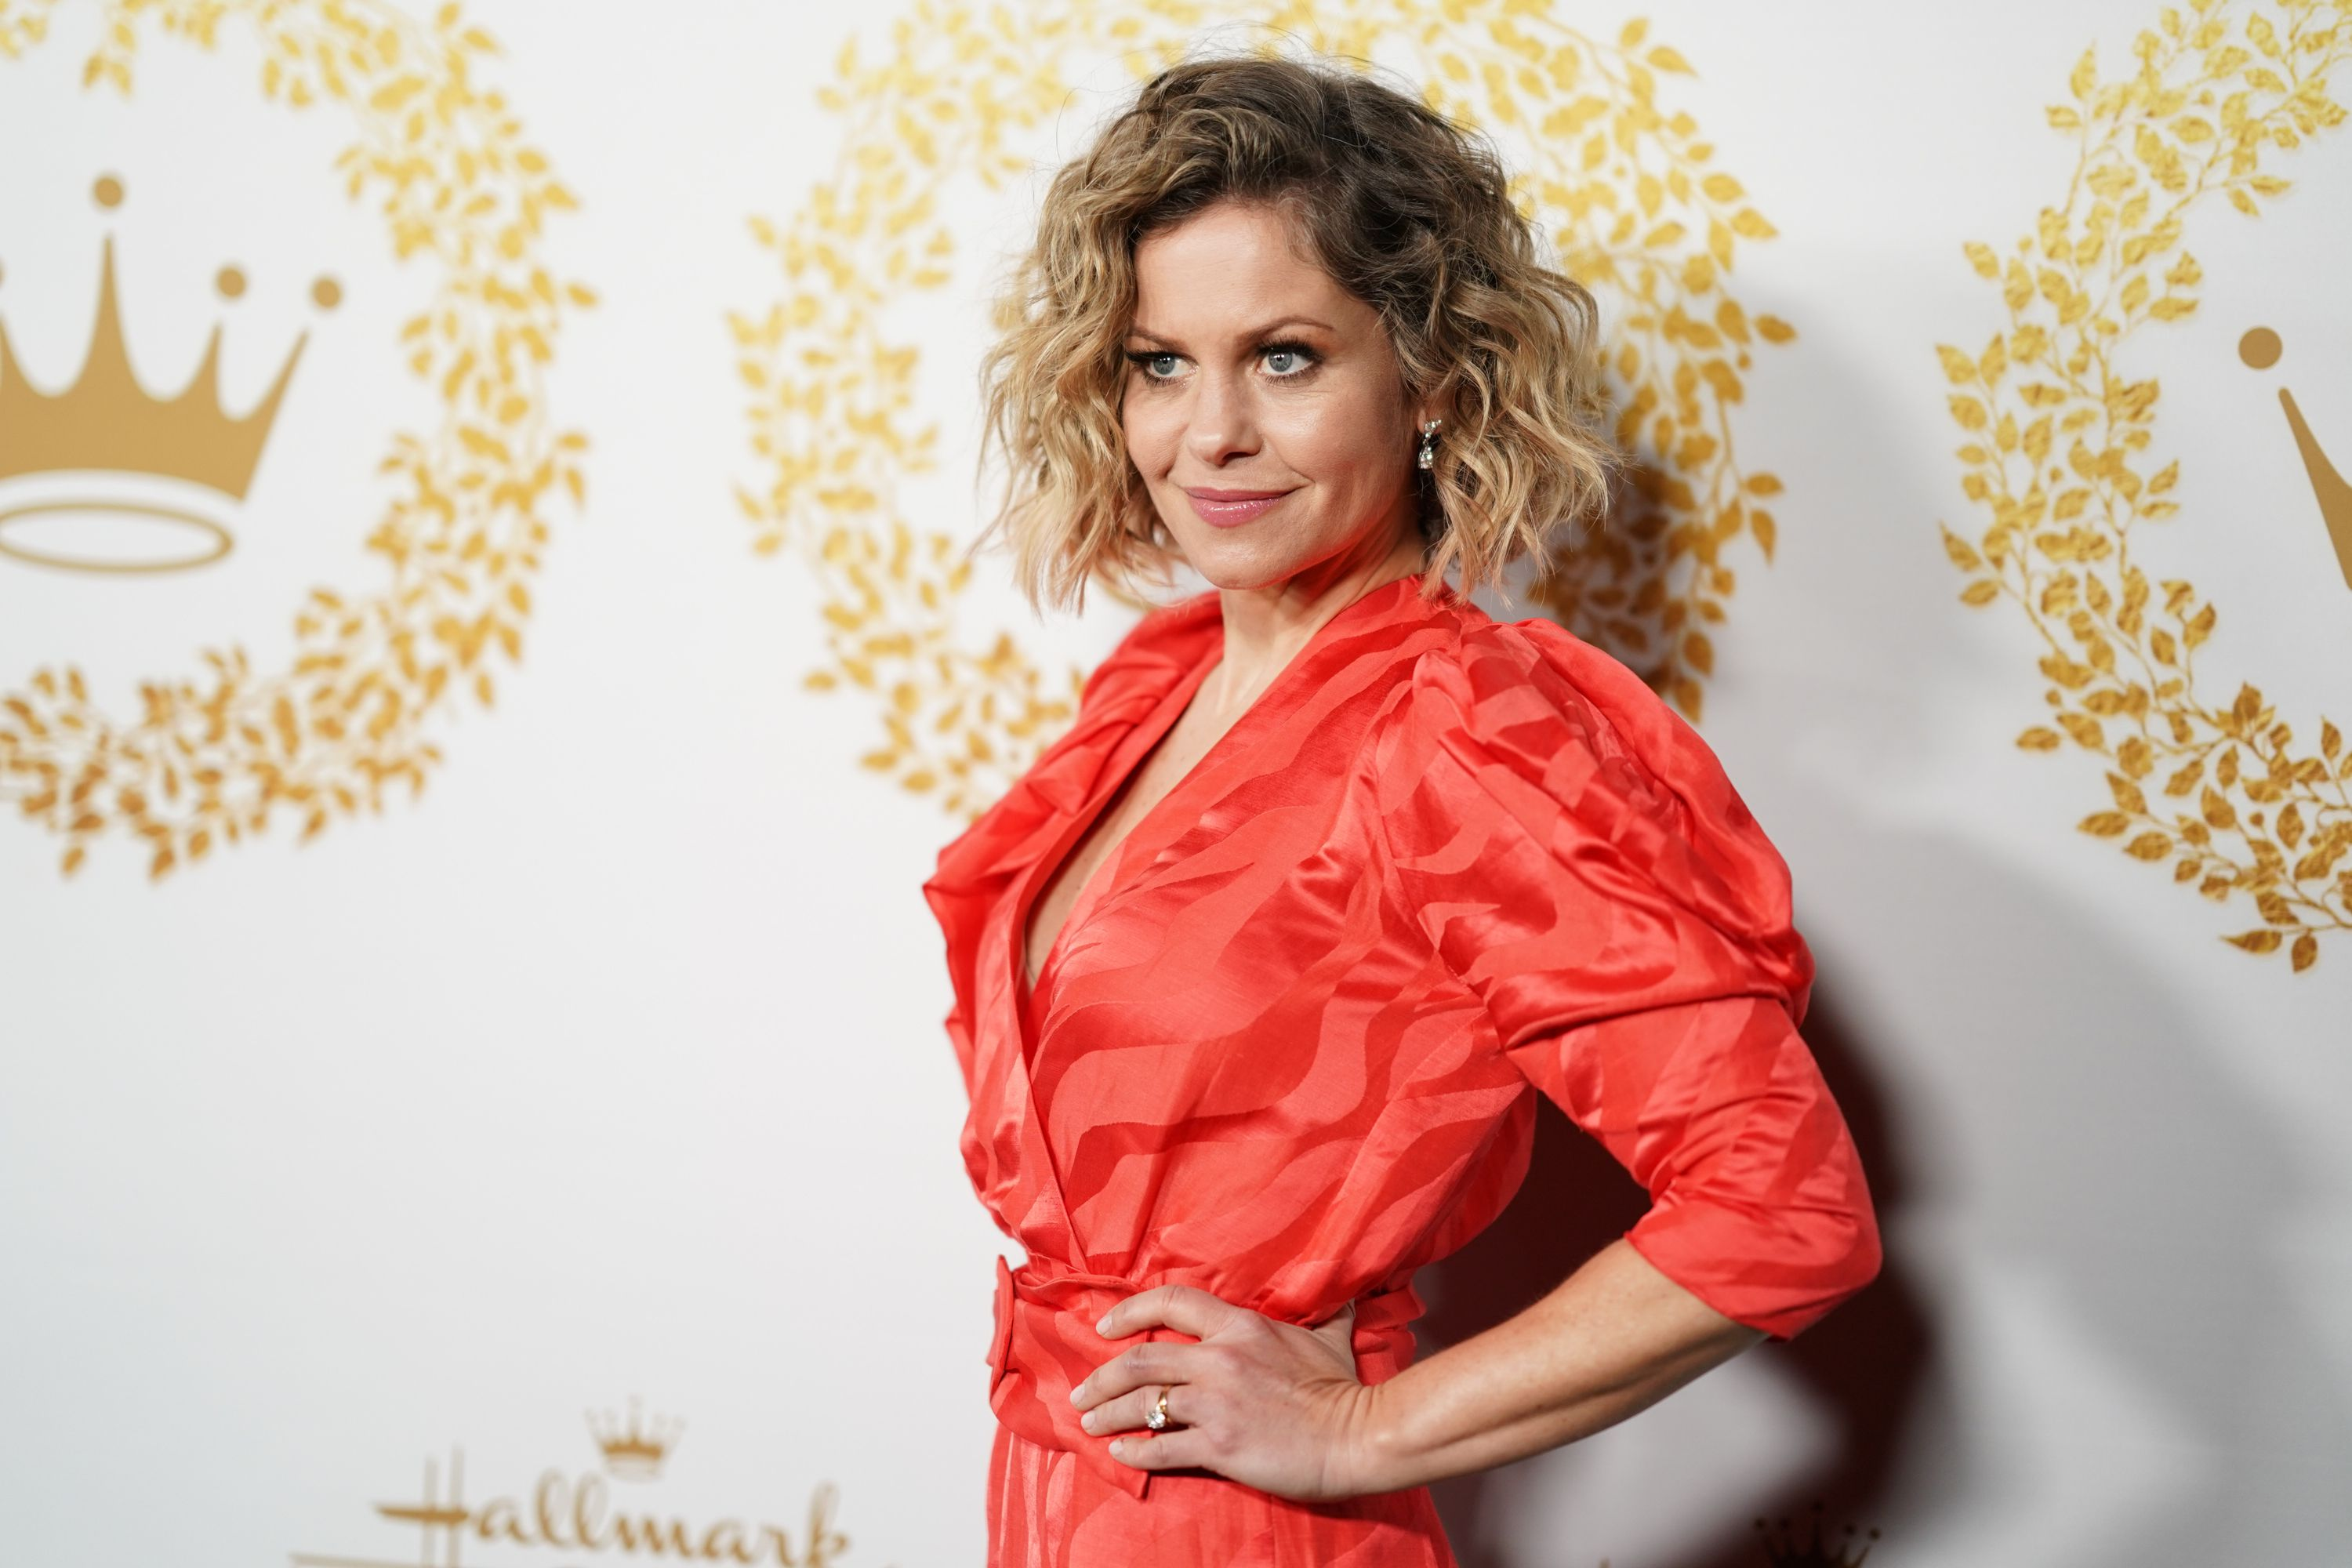 Candace Cameron Bure at the Hallmark Channel and Hallmark Movies and Mysteries 2019 Winter TCA Tour at Tournament House on February 09, 2019 | Photo: Getty Images